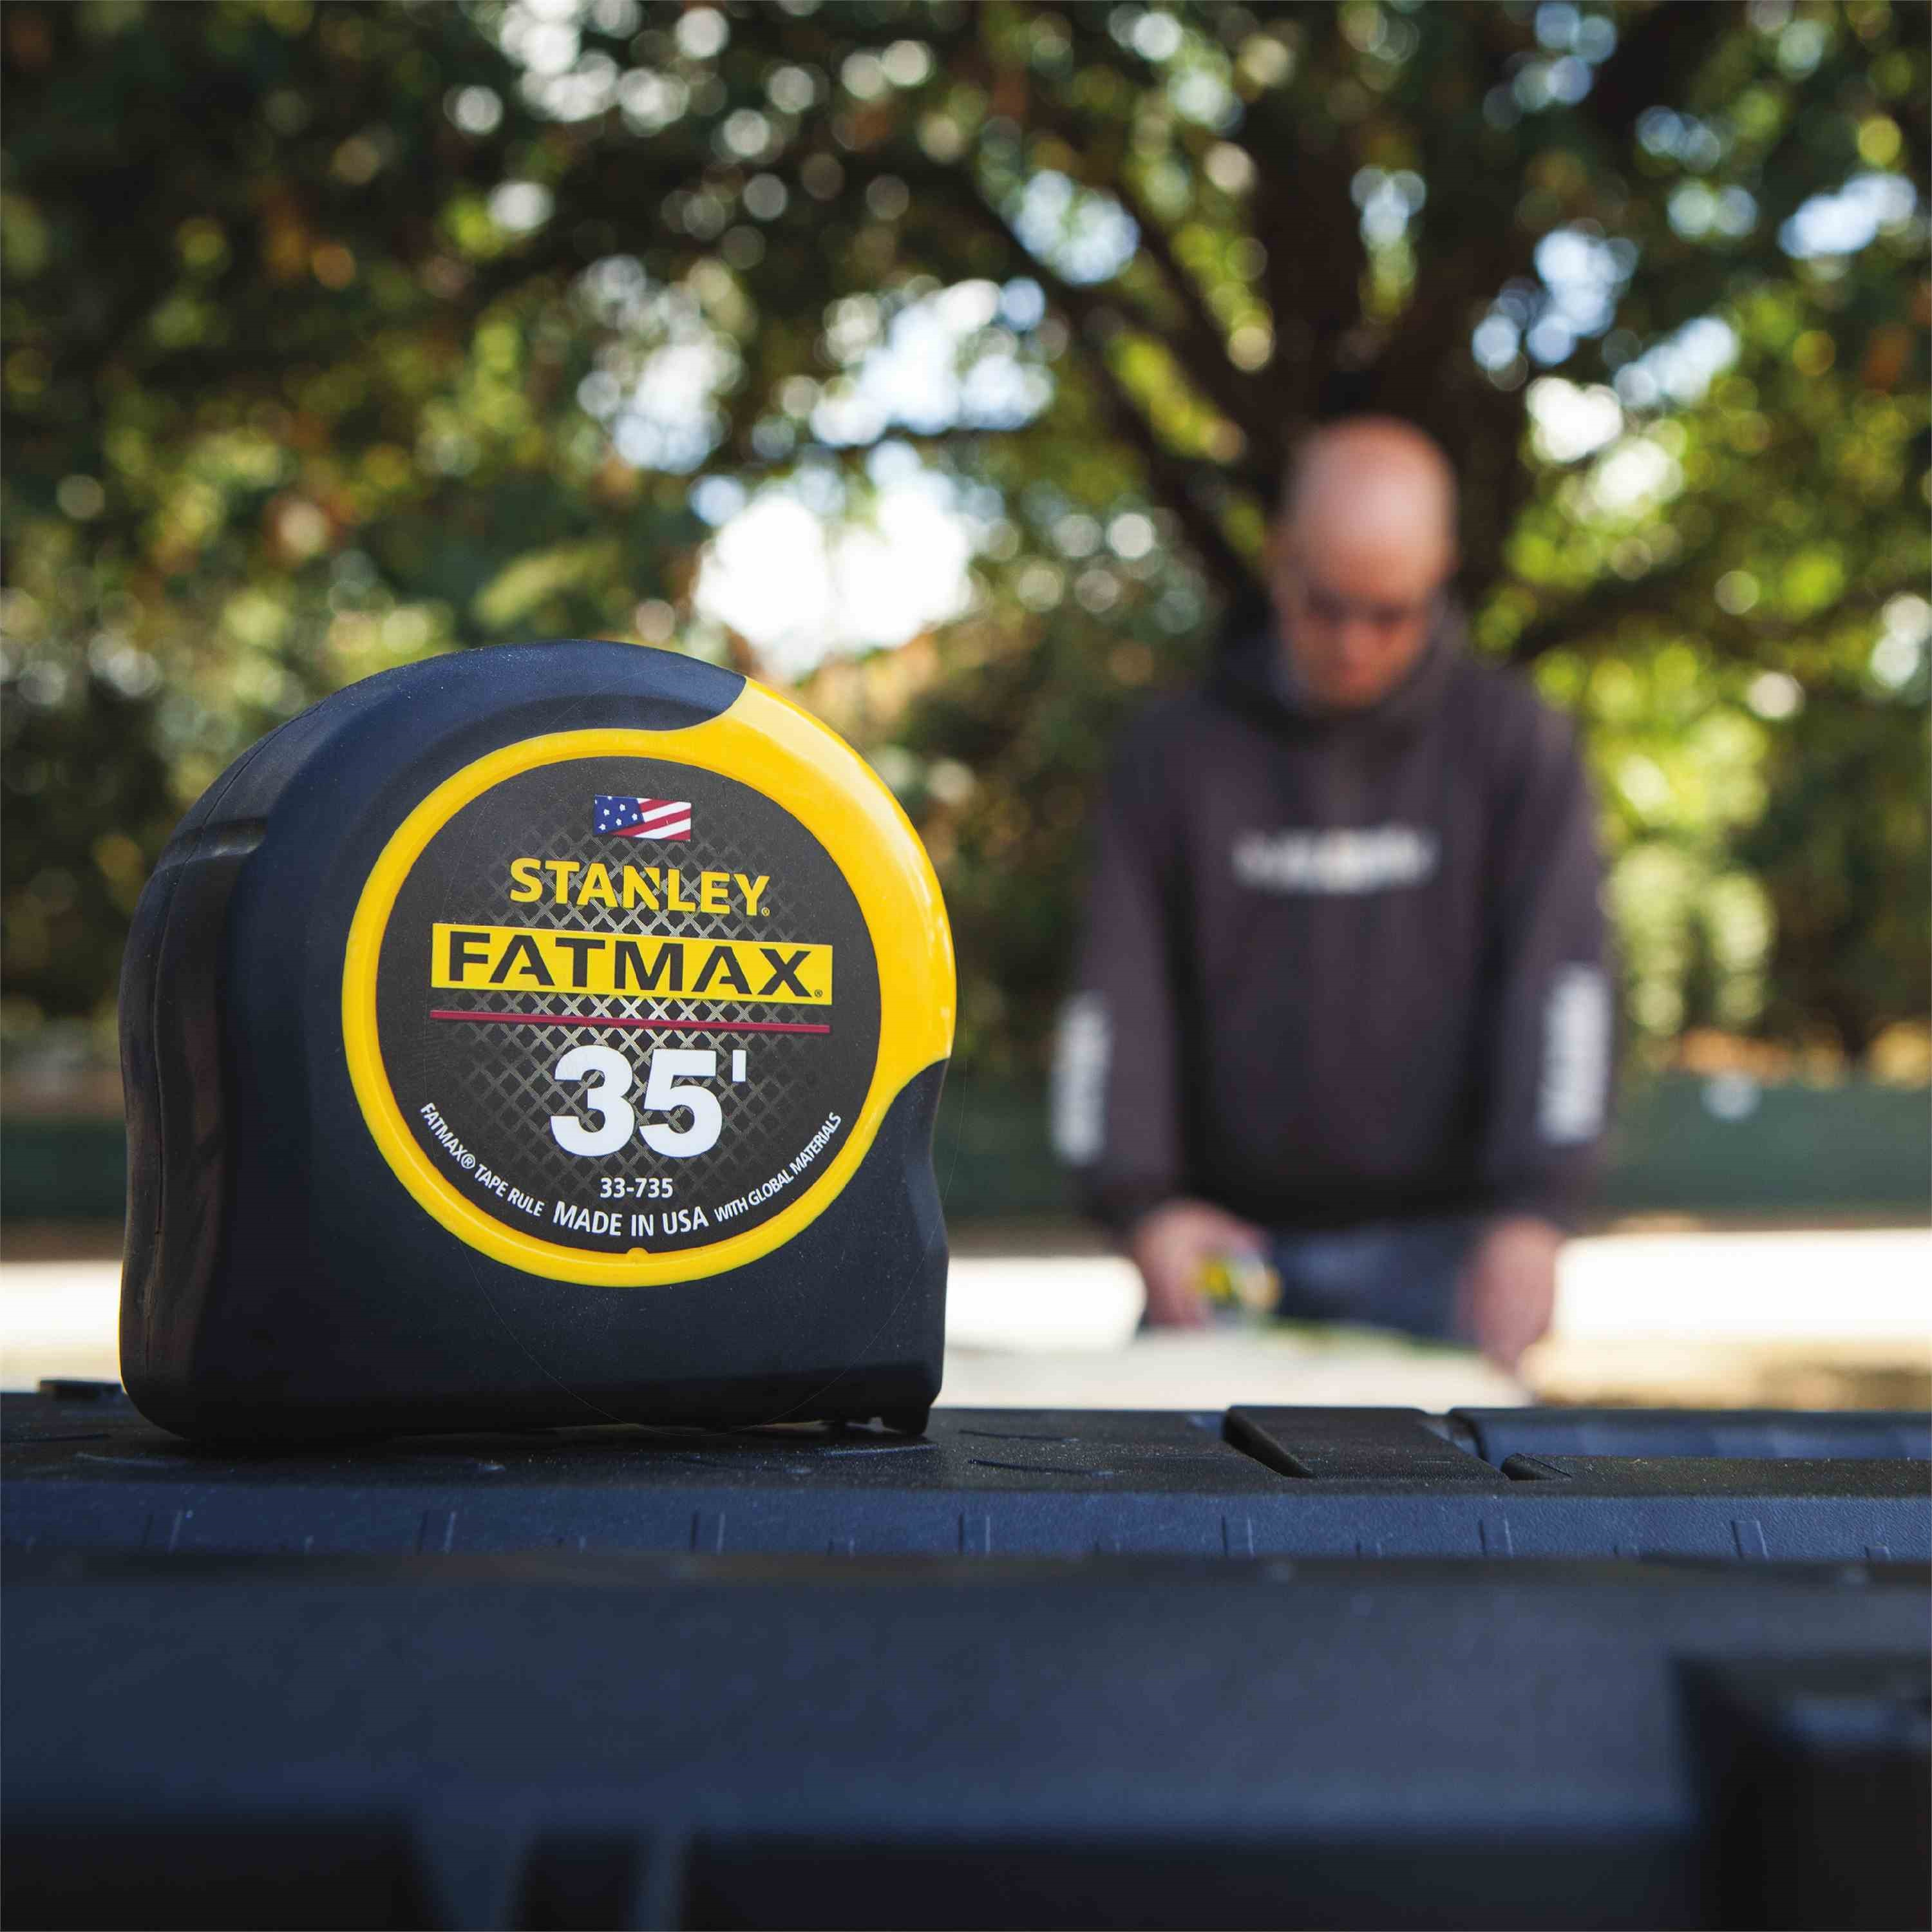 Stanley Tools - 35 ft FATMAX Tape Measure - 33-735